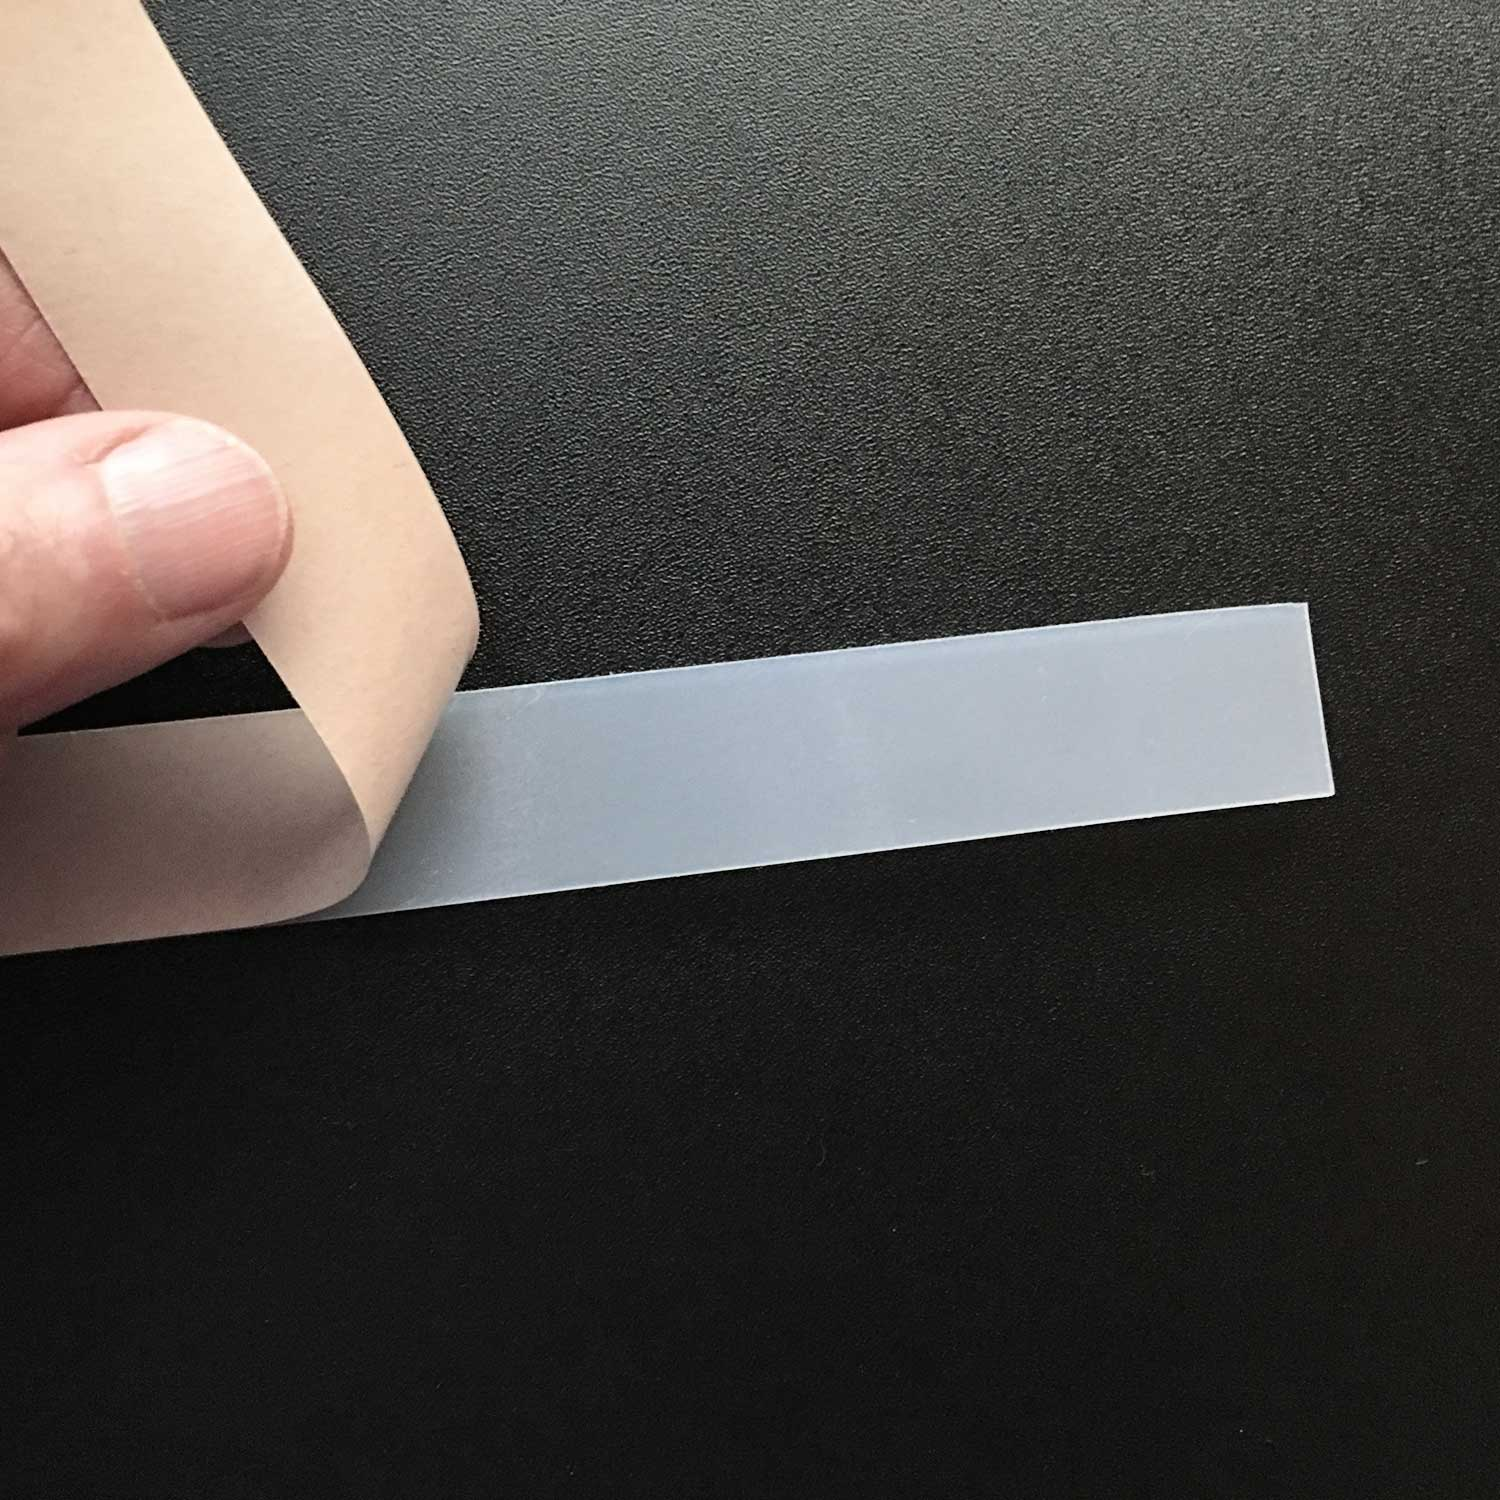 Uhmw Adhesive Tape For Guide Rails Verysupercool Tools